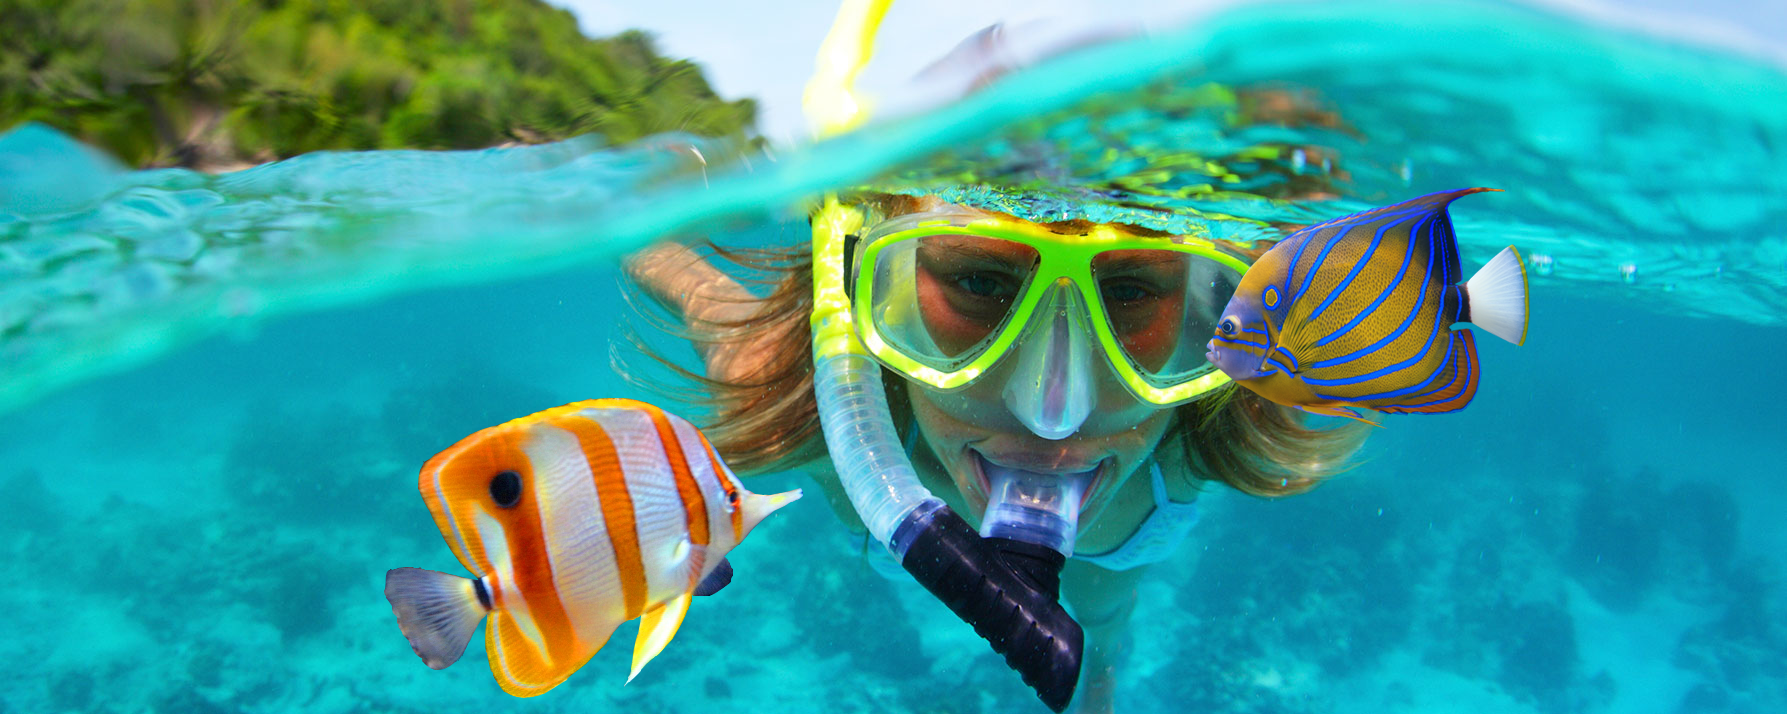 Top 10 Scuba Mask Reviews — Best Models for Snorkeling and ...